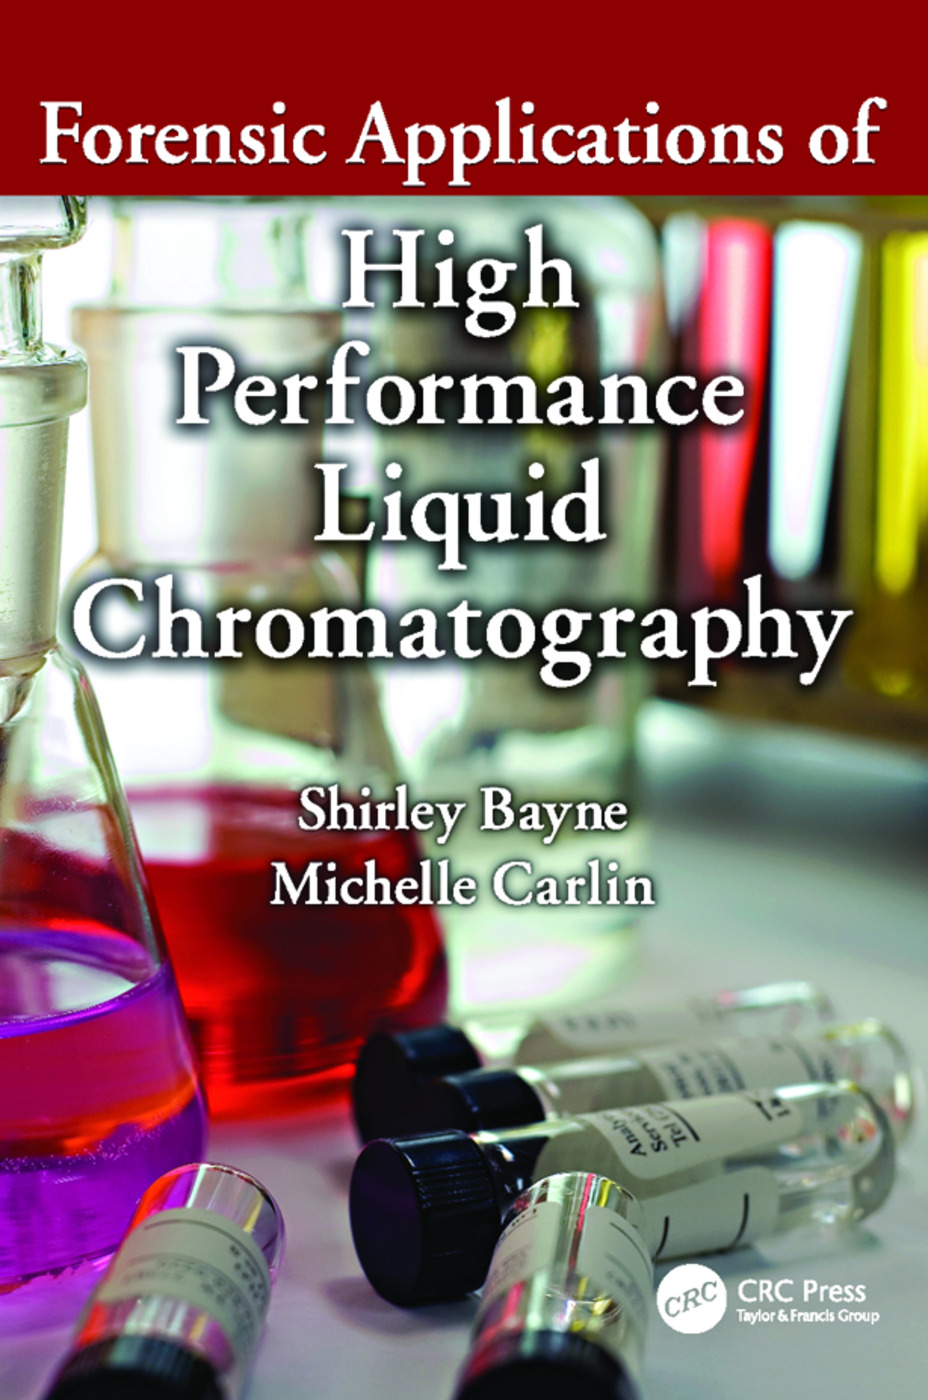 Forensic Applications of High Performance Liquid Chromatography: 1st Edition (Hardback) book cover